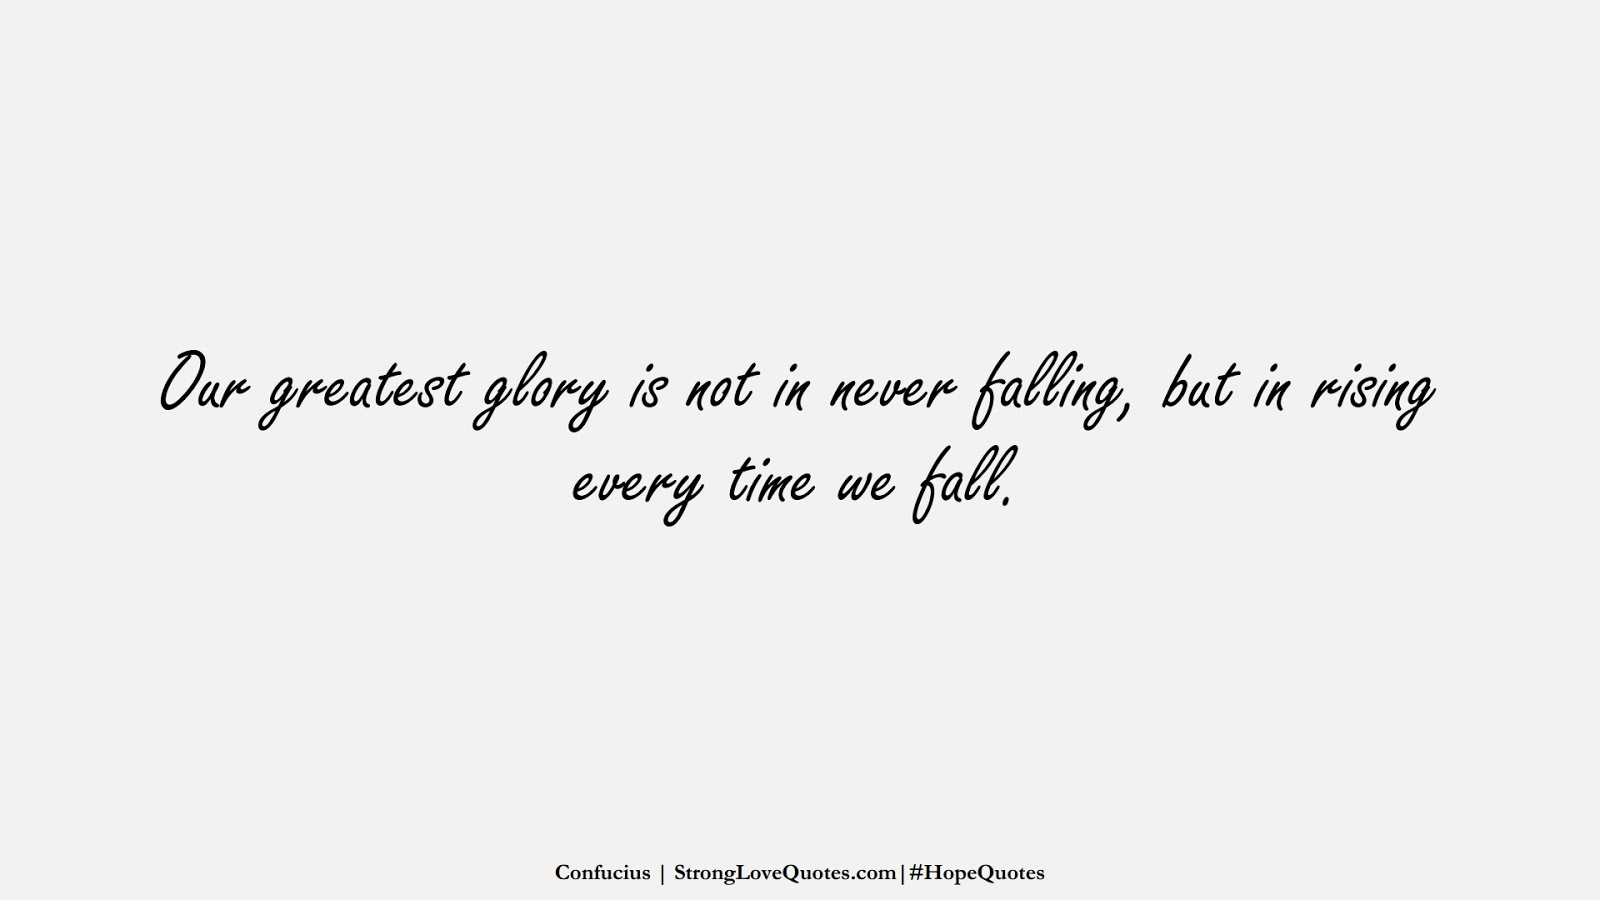 Our greatest glory is not in never falling, but in rising every time we fall. (Confucius);  #HopeQuotes